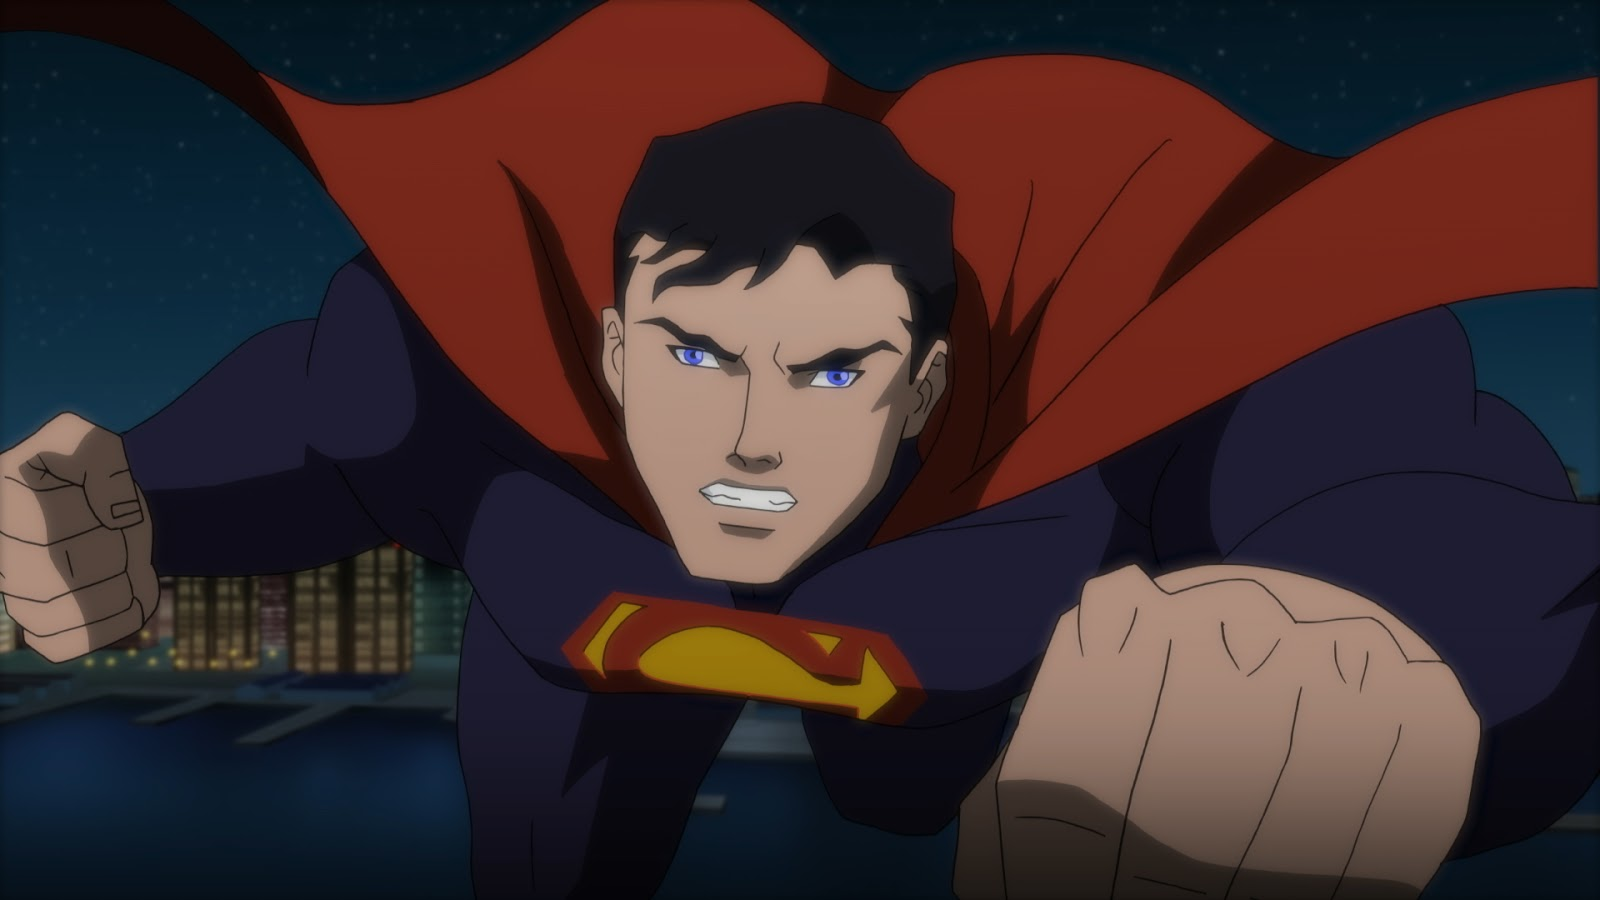 Collecting Toyz Warner Bros Home Entertainment Announces 2 World Of Destruction Single Card Common Short Circuit Lodten056 Toywiz Dc And Animation Invite Wondercon Attendees To Witness The Premiere Justice League Vs